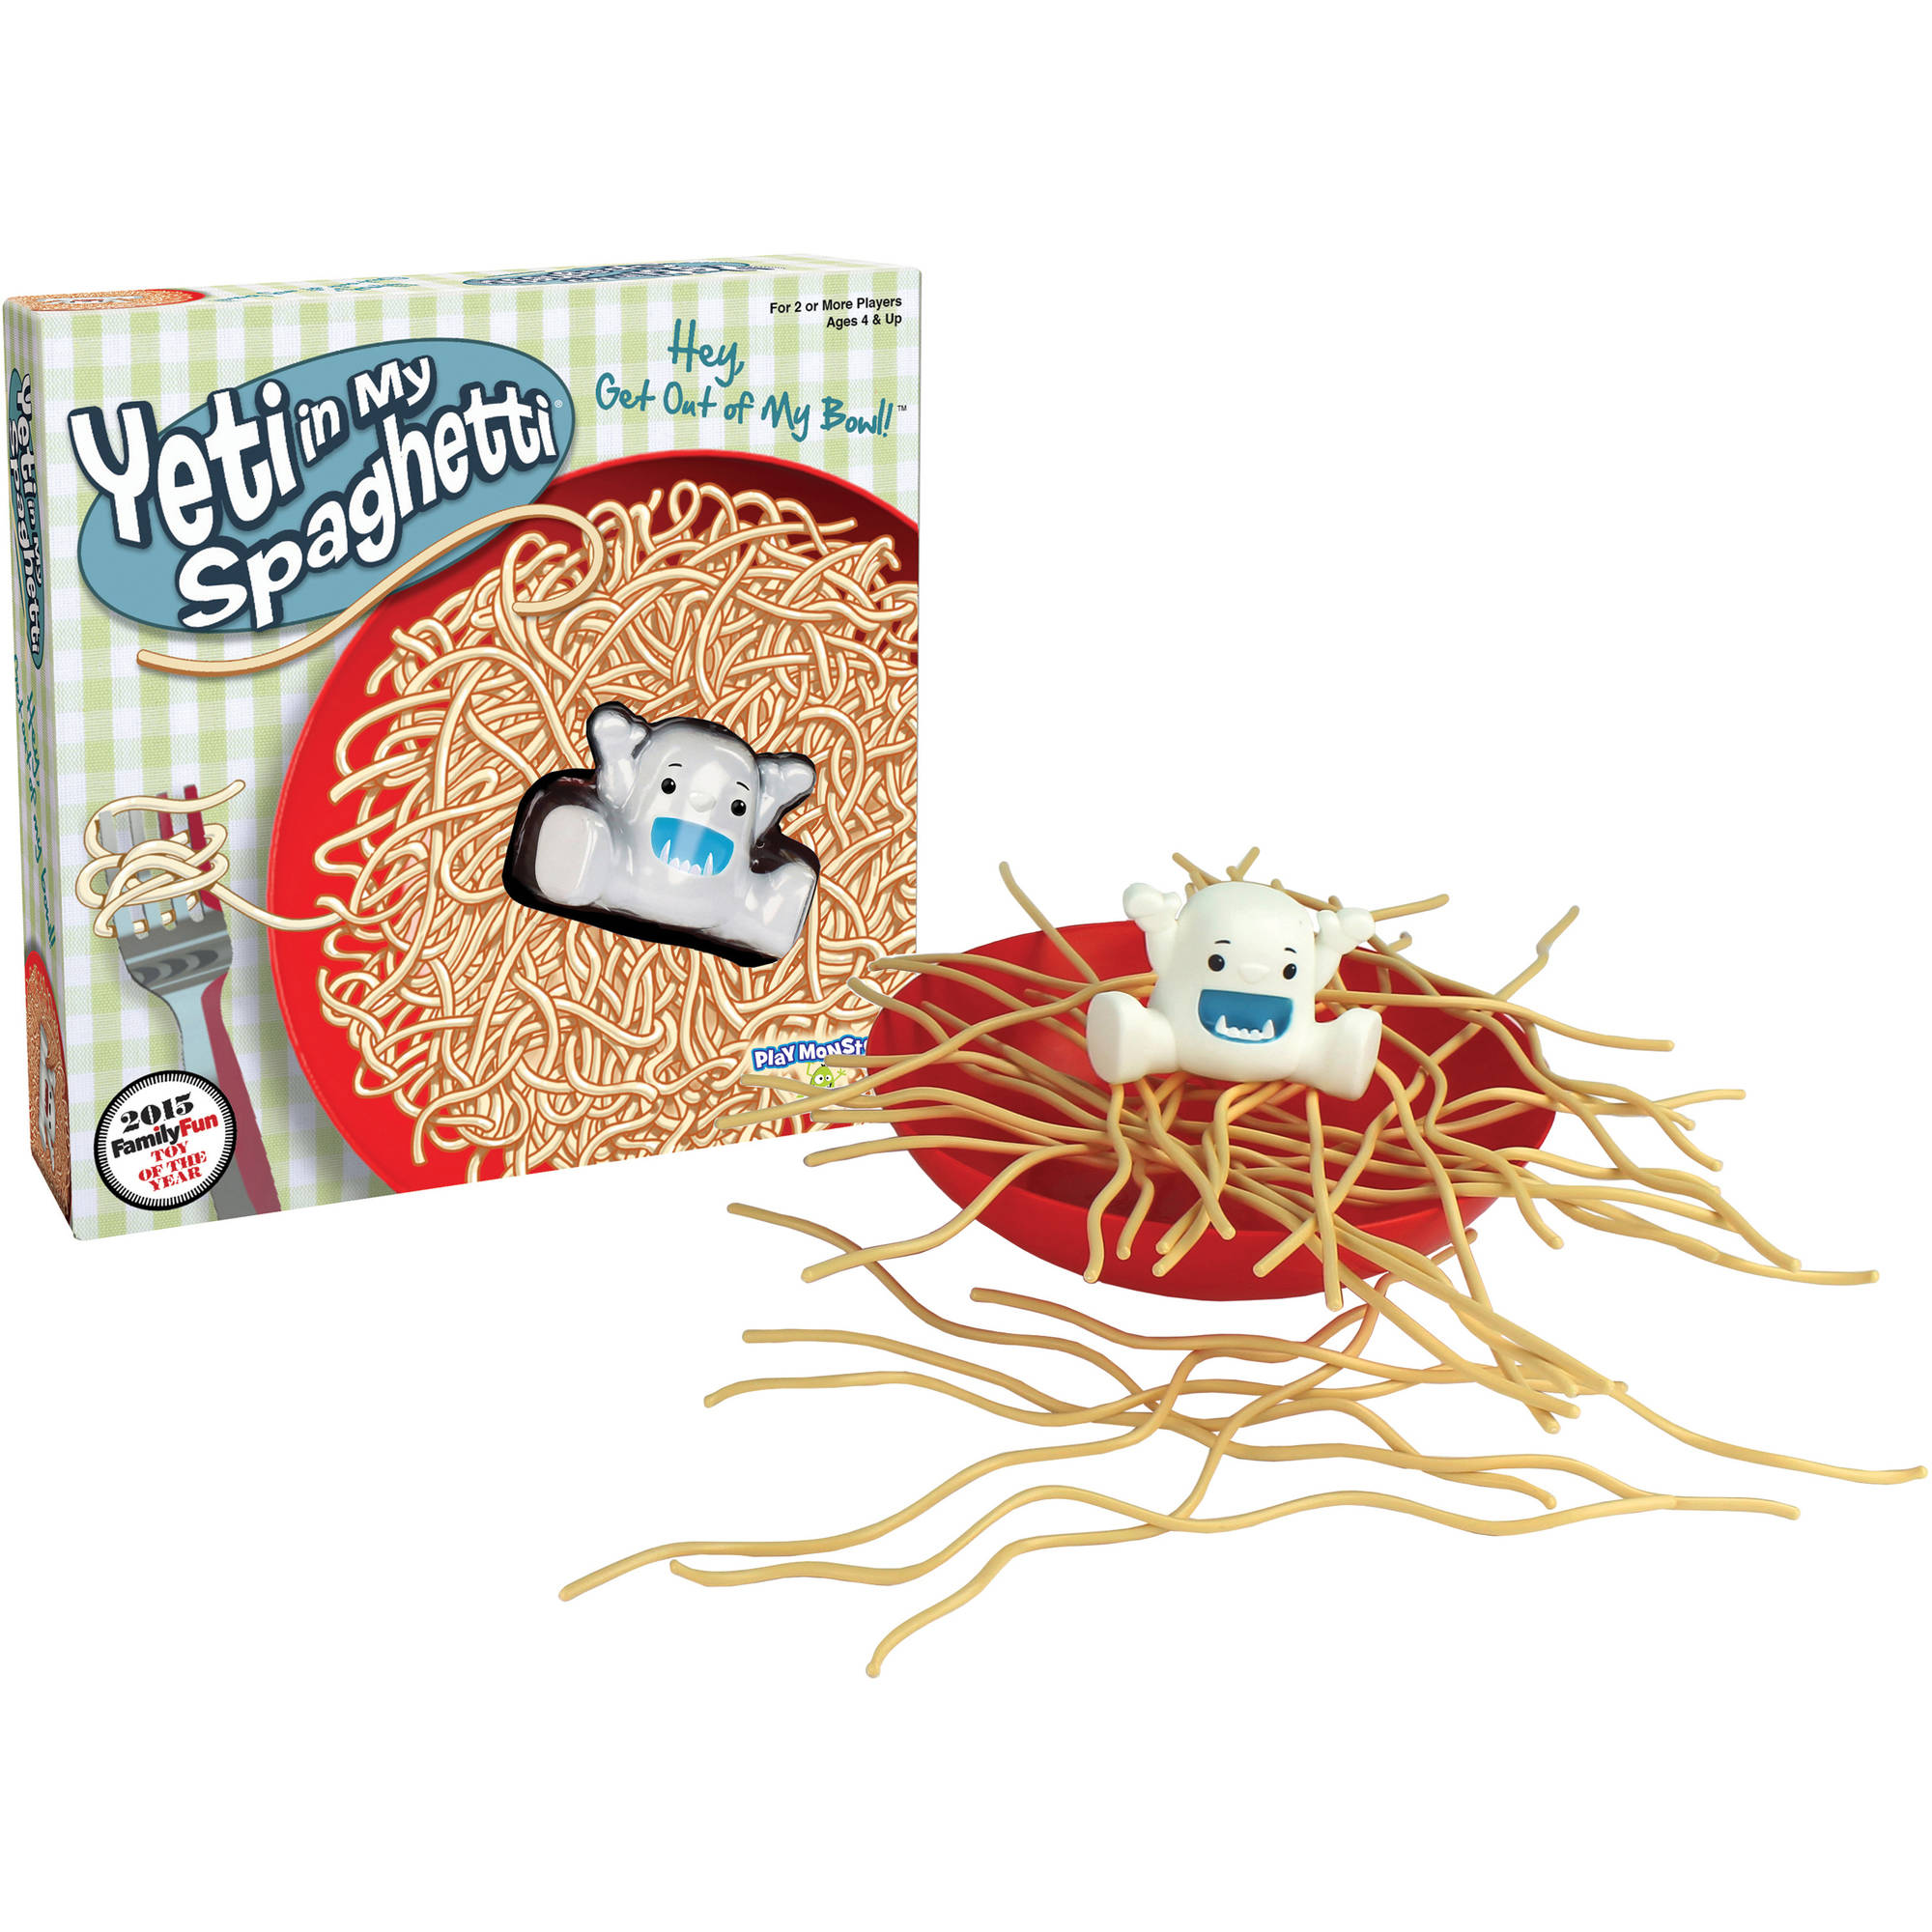 yeti in my spaghetti game walmartcom